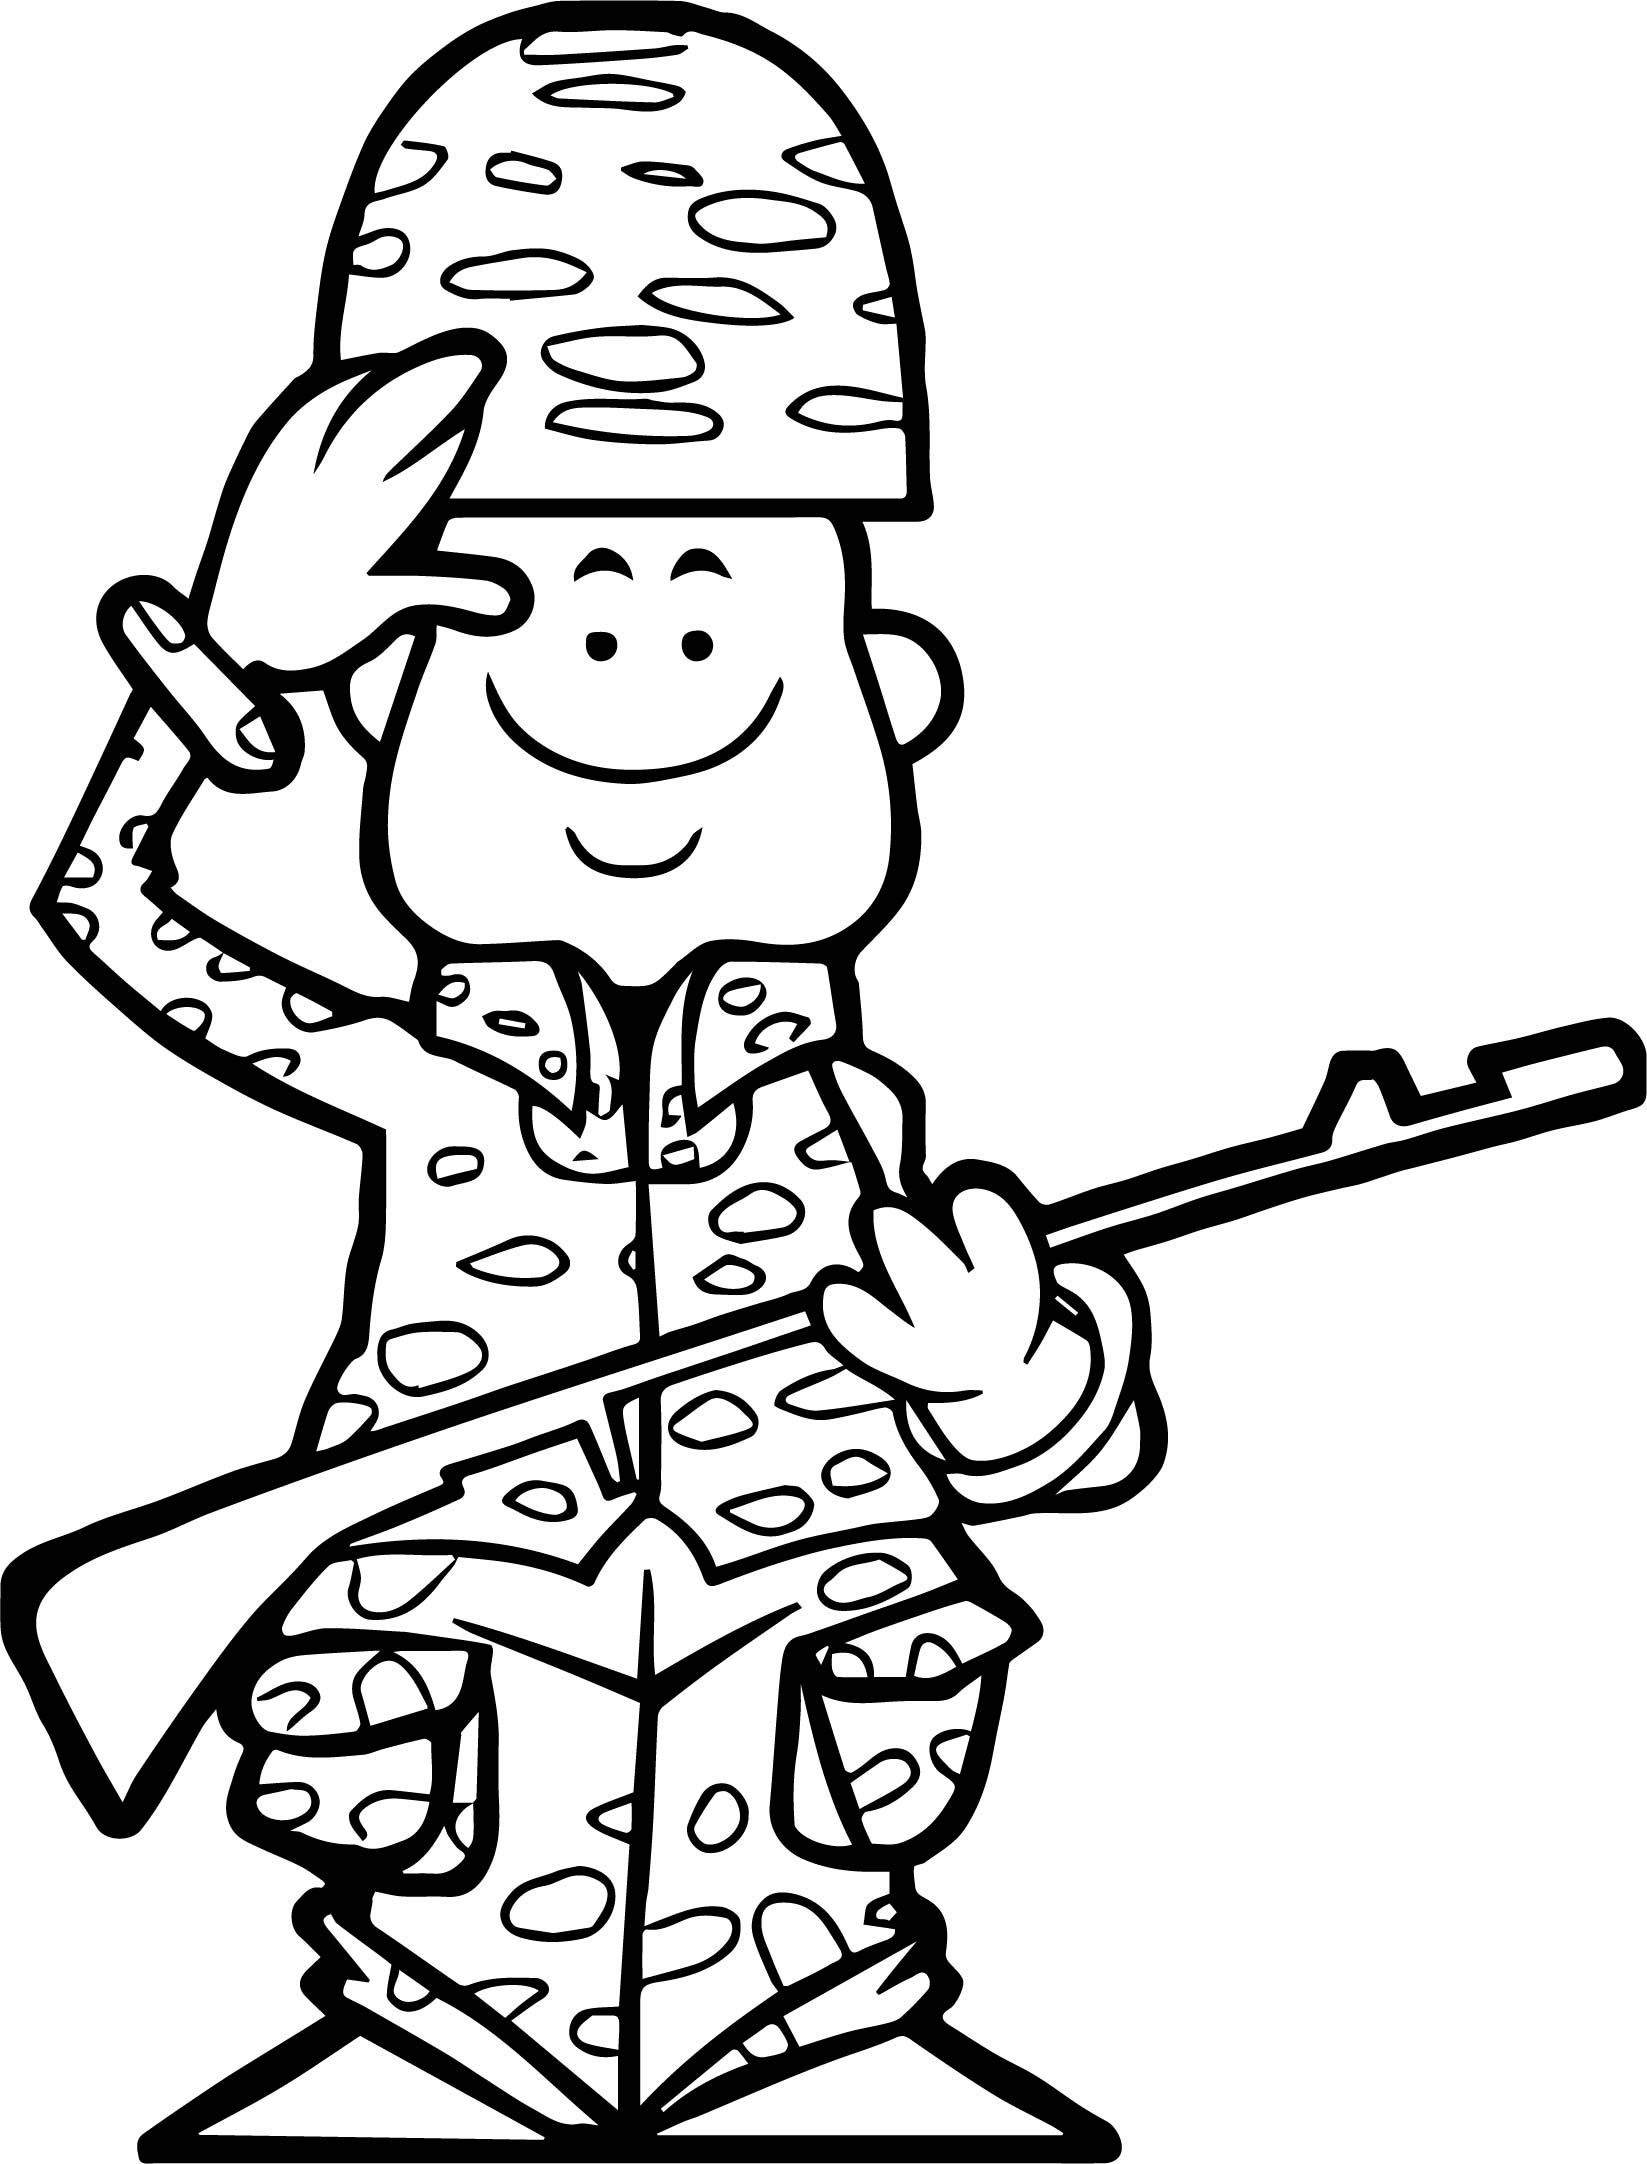 Cool Ready Soldier Coloring Page Coloring Pages Coloring Books Army Colors